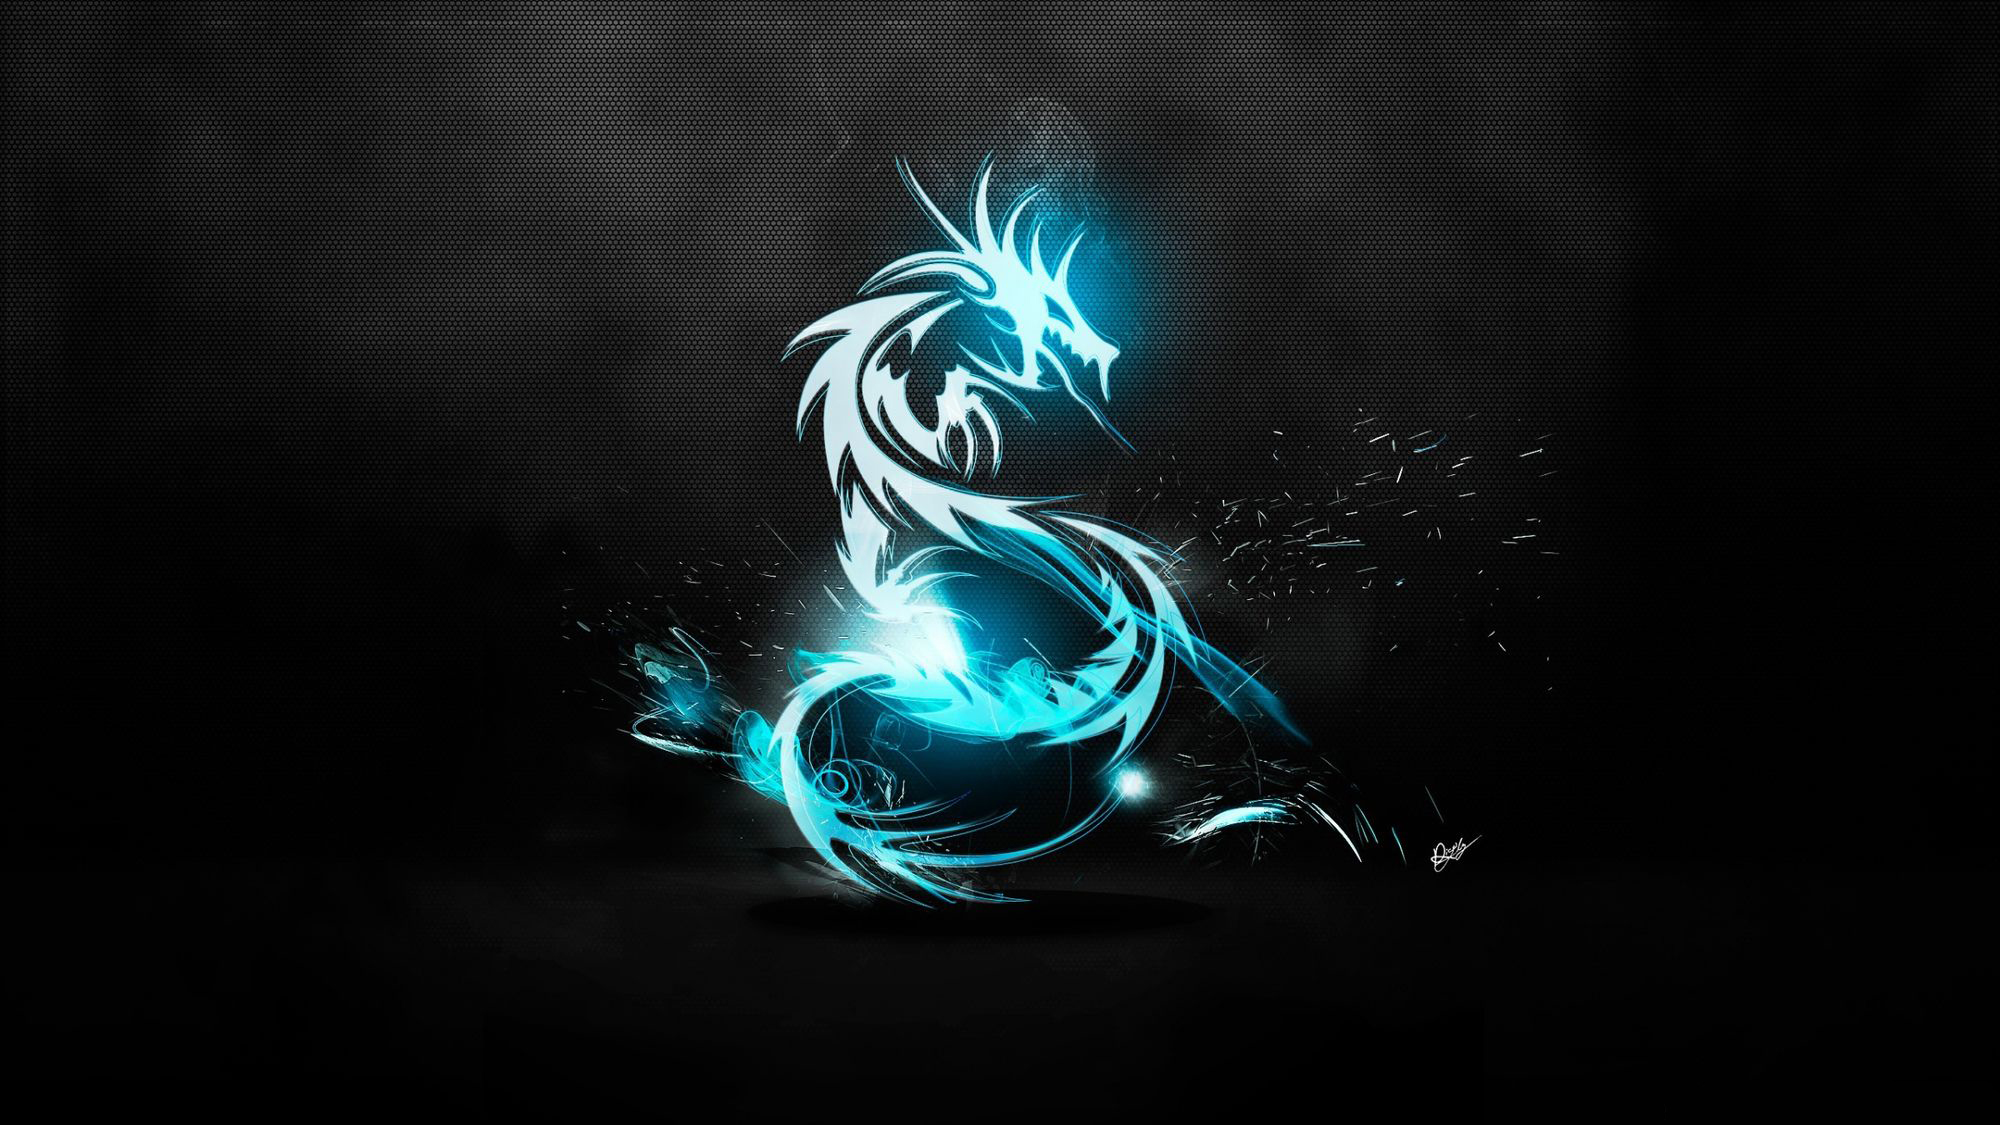 Dragon_symbol-wallpaper-2400x1350